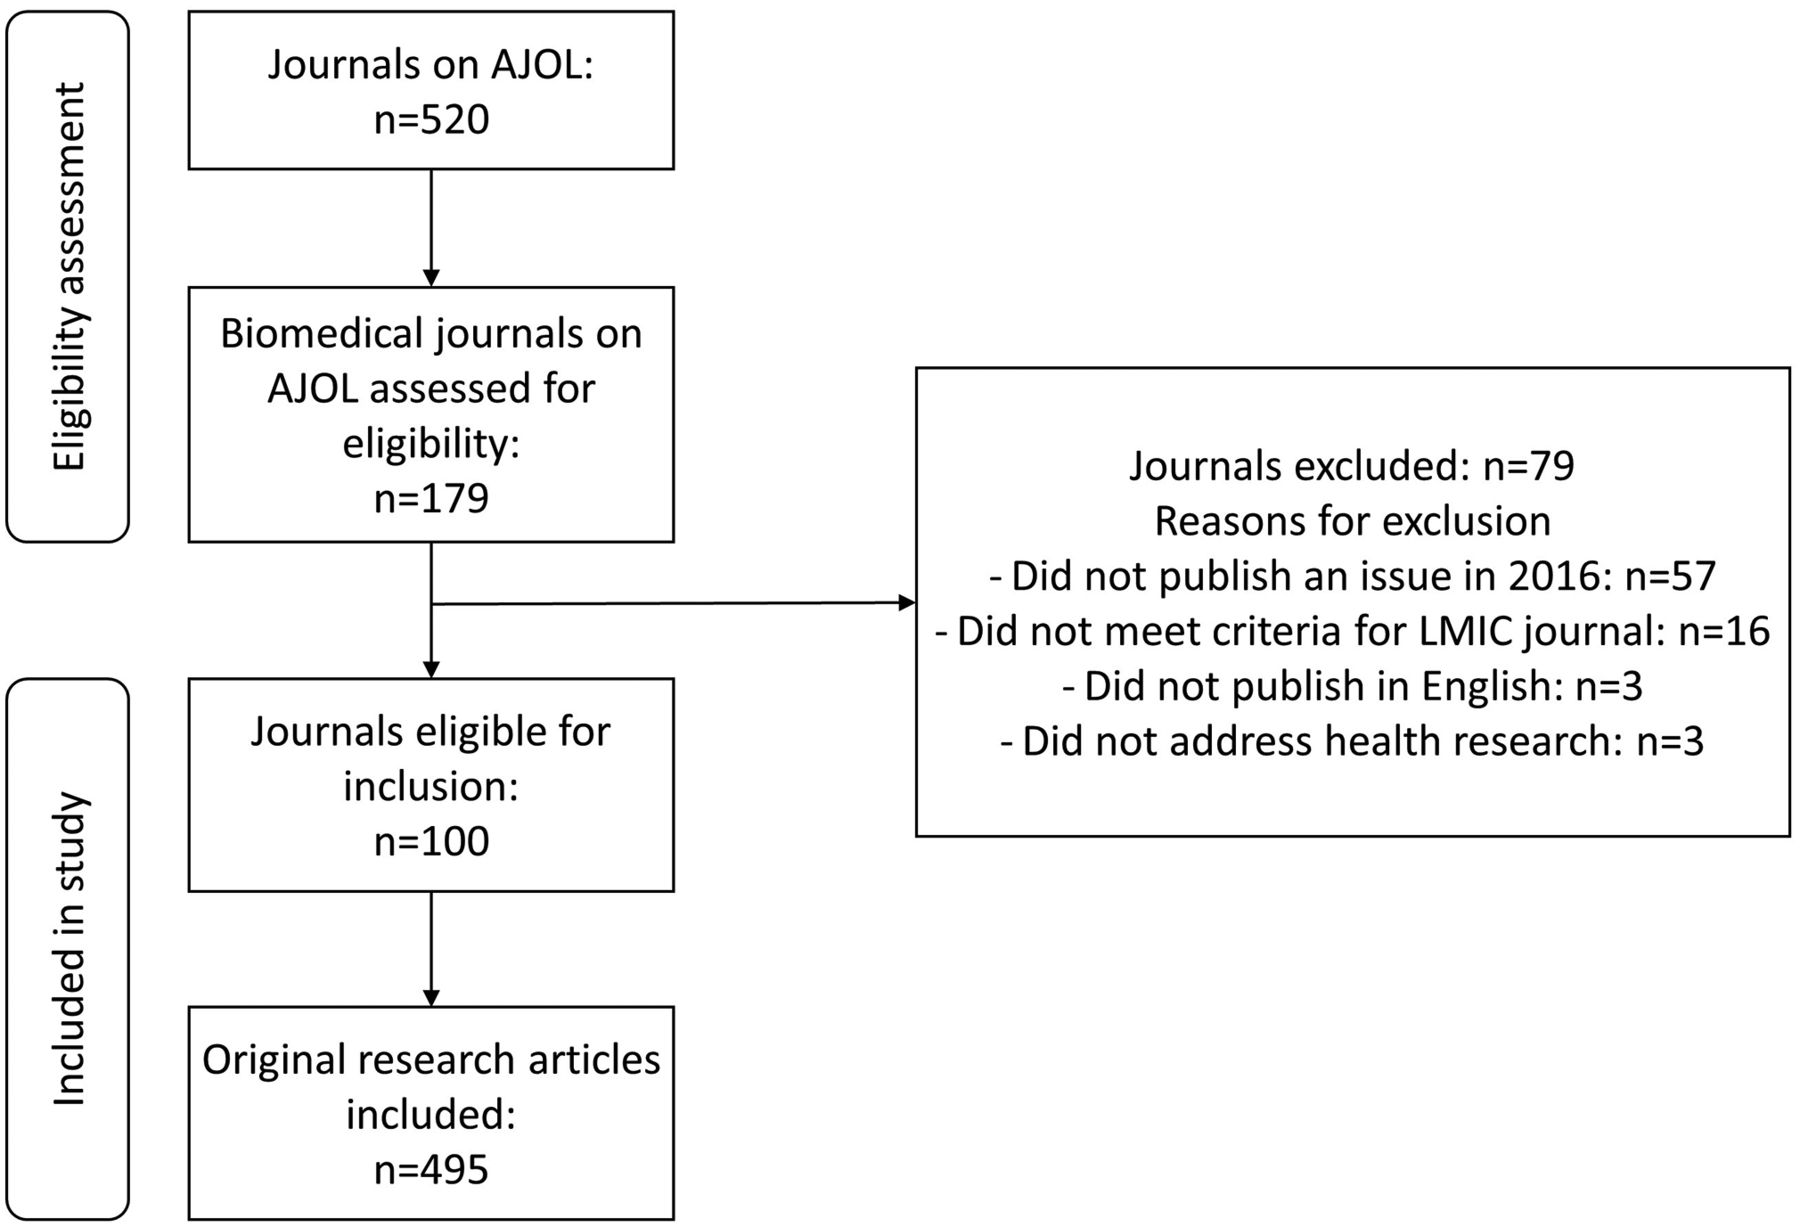 Plagiarism in research: a survey of African medical journals